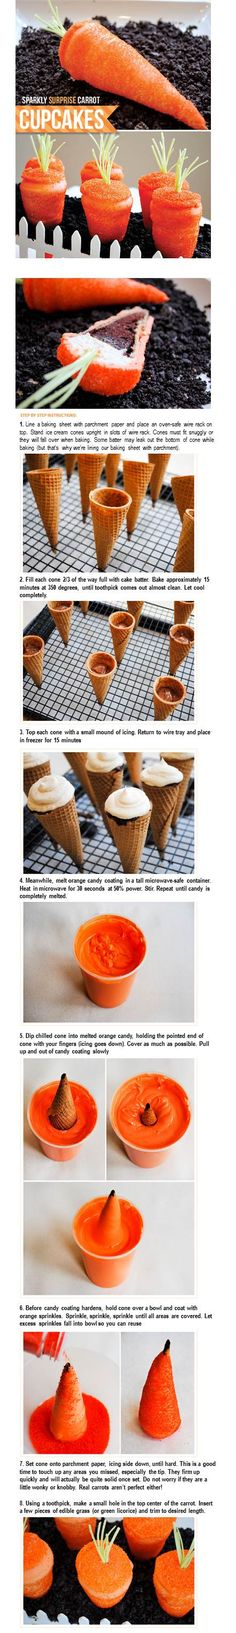 SPARKLING CARROT CUPCAKES – Ice Cream Cones (12); Chocolate Cake Batter (made from mix or from scratch); Buttercream Icing (store bought or homemade); Orange Candy Melts (2 packs); Orange Sprinkles (2 jars); Green Edible Candy Grass. No tray, use tin foil bunch loosely around cone bottom or try upside down foil cupcake tray with holes to support cake.